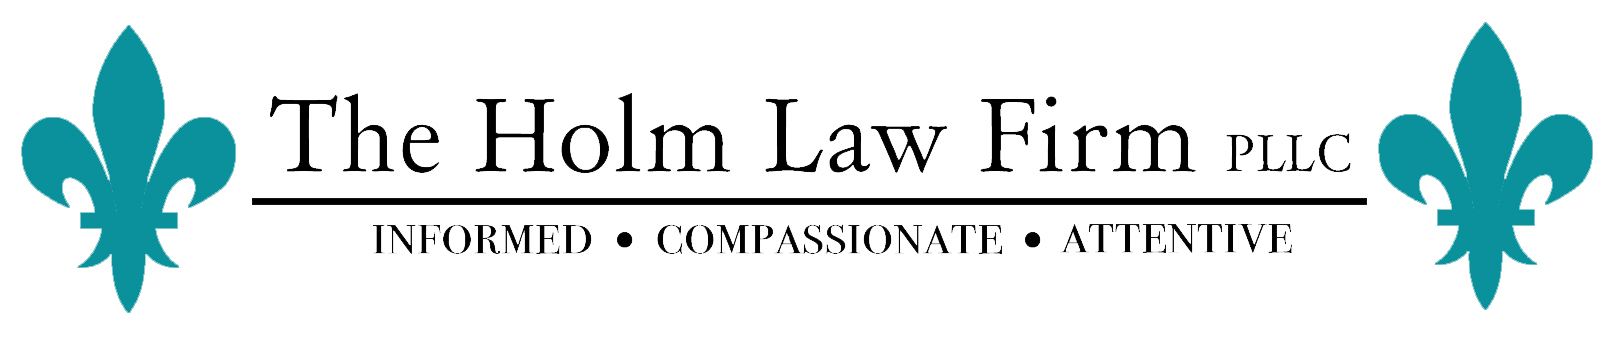 The Holm Law Firm